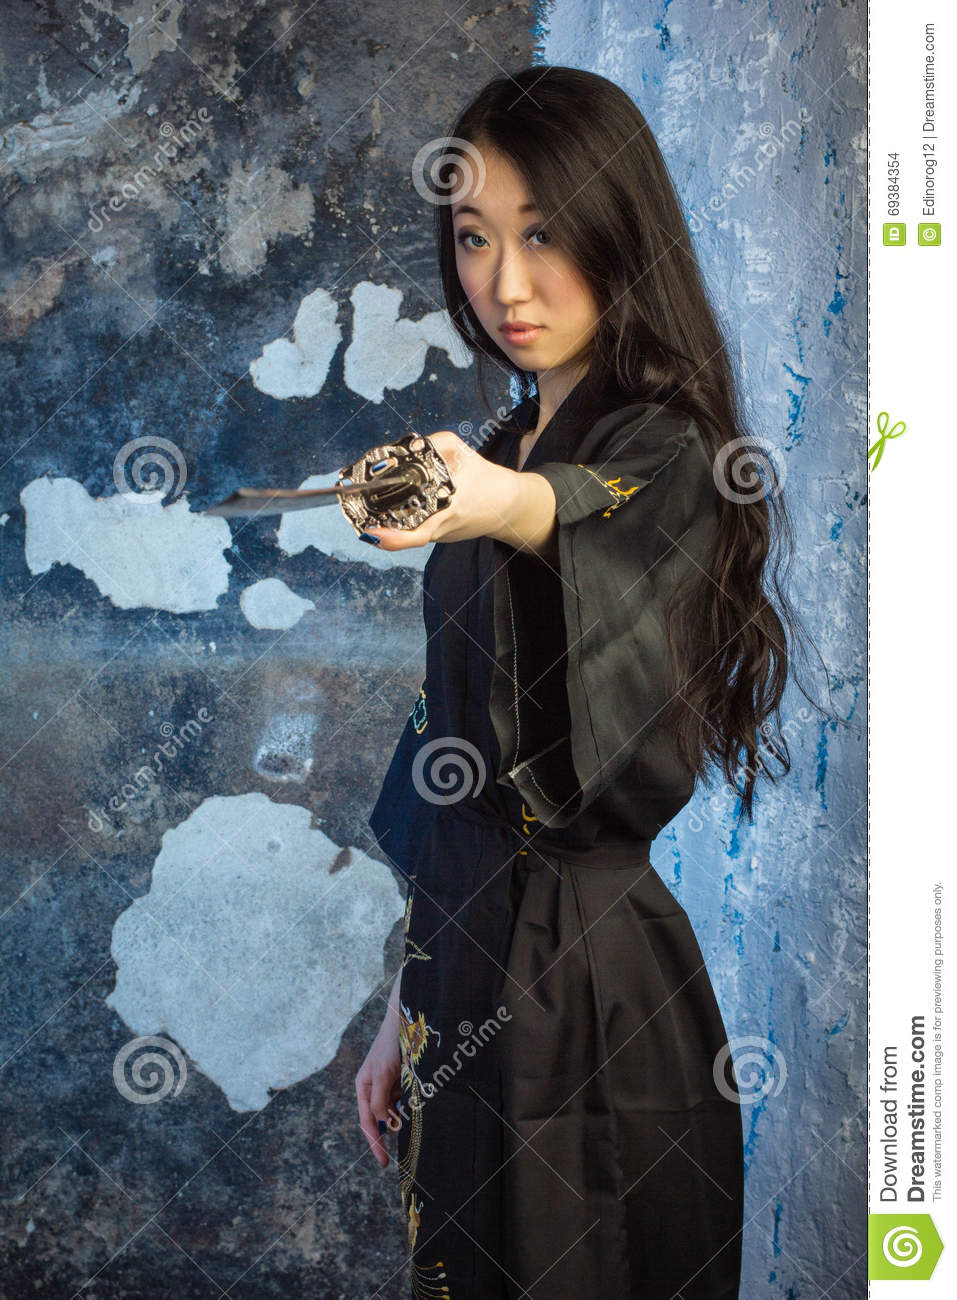 Asian girl samurai sword